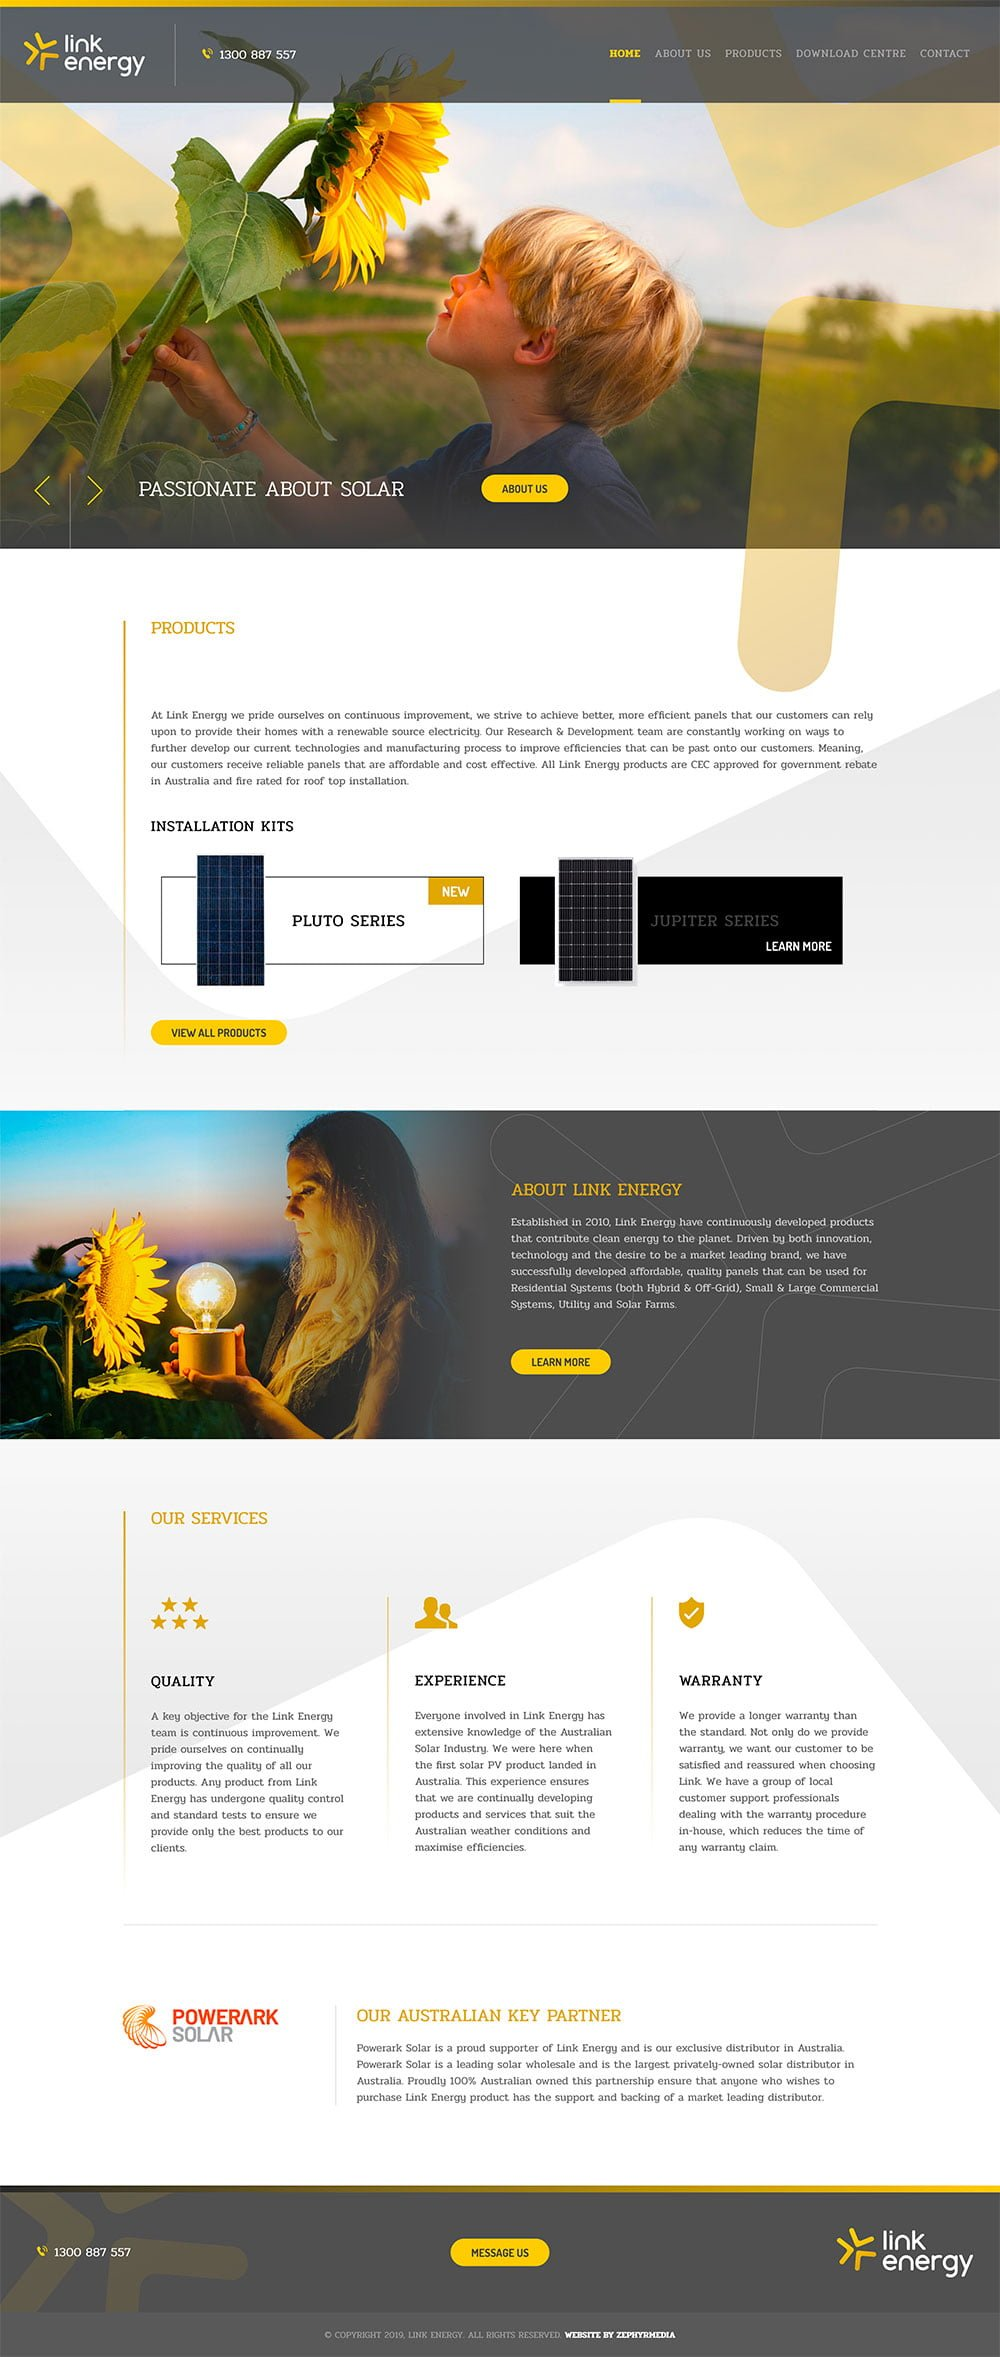 Website Design by Zephyrmedia